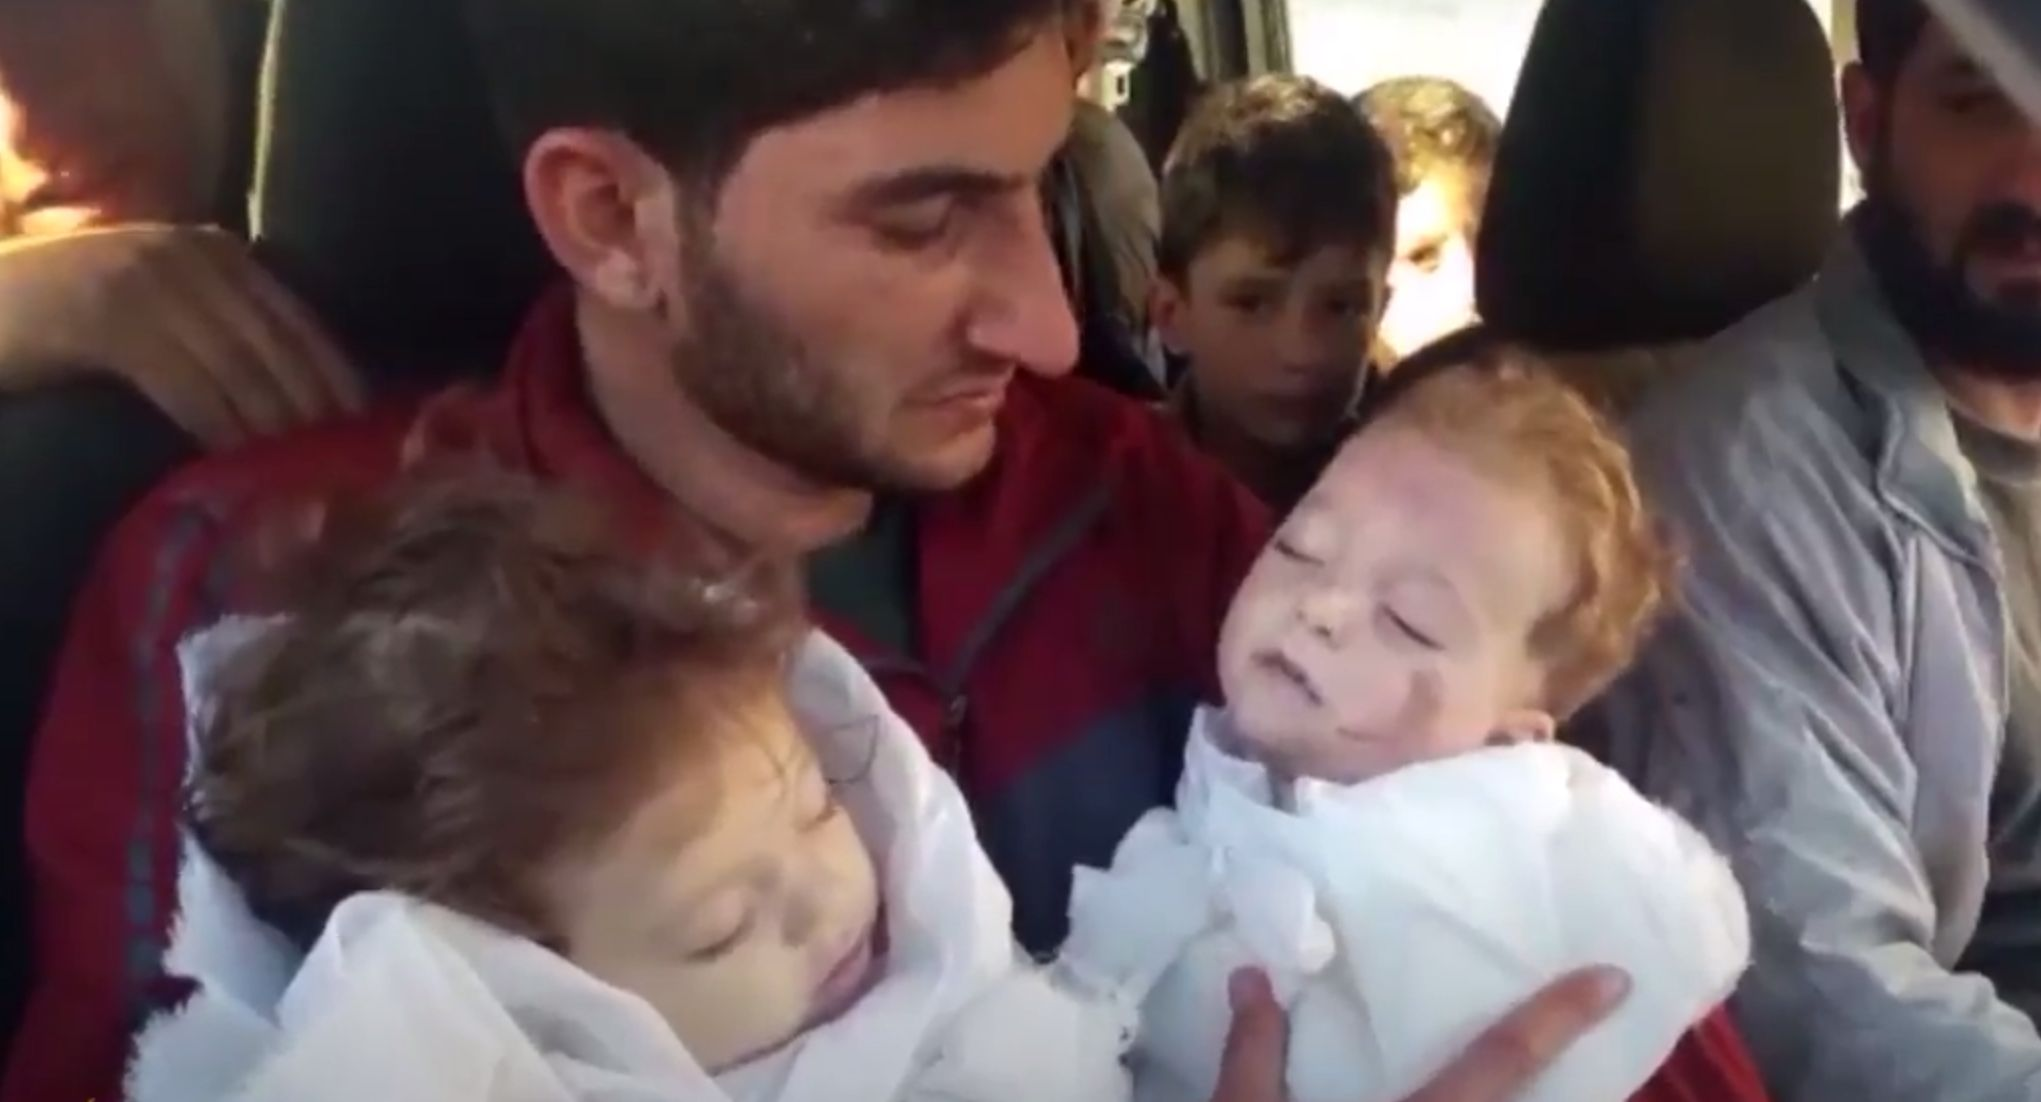 In a video, father Abdel Hameed Alyousef carries his twin daughters who were killed in the gas attack in the province of Idli